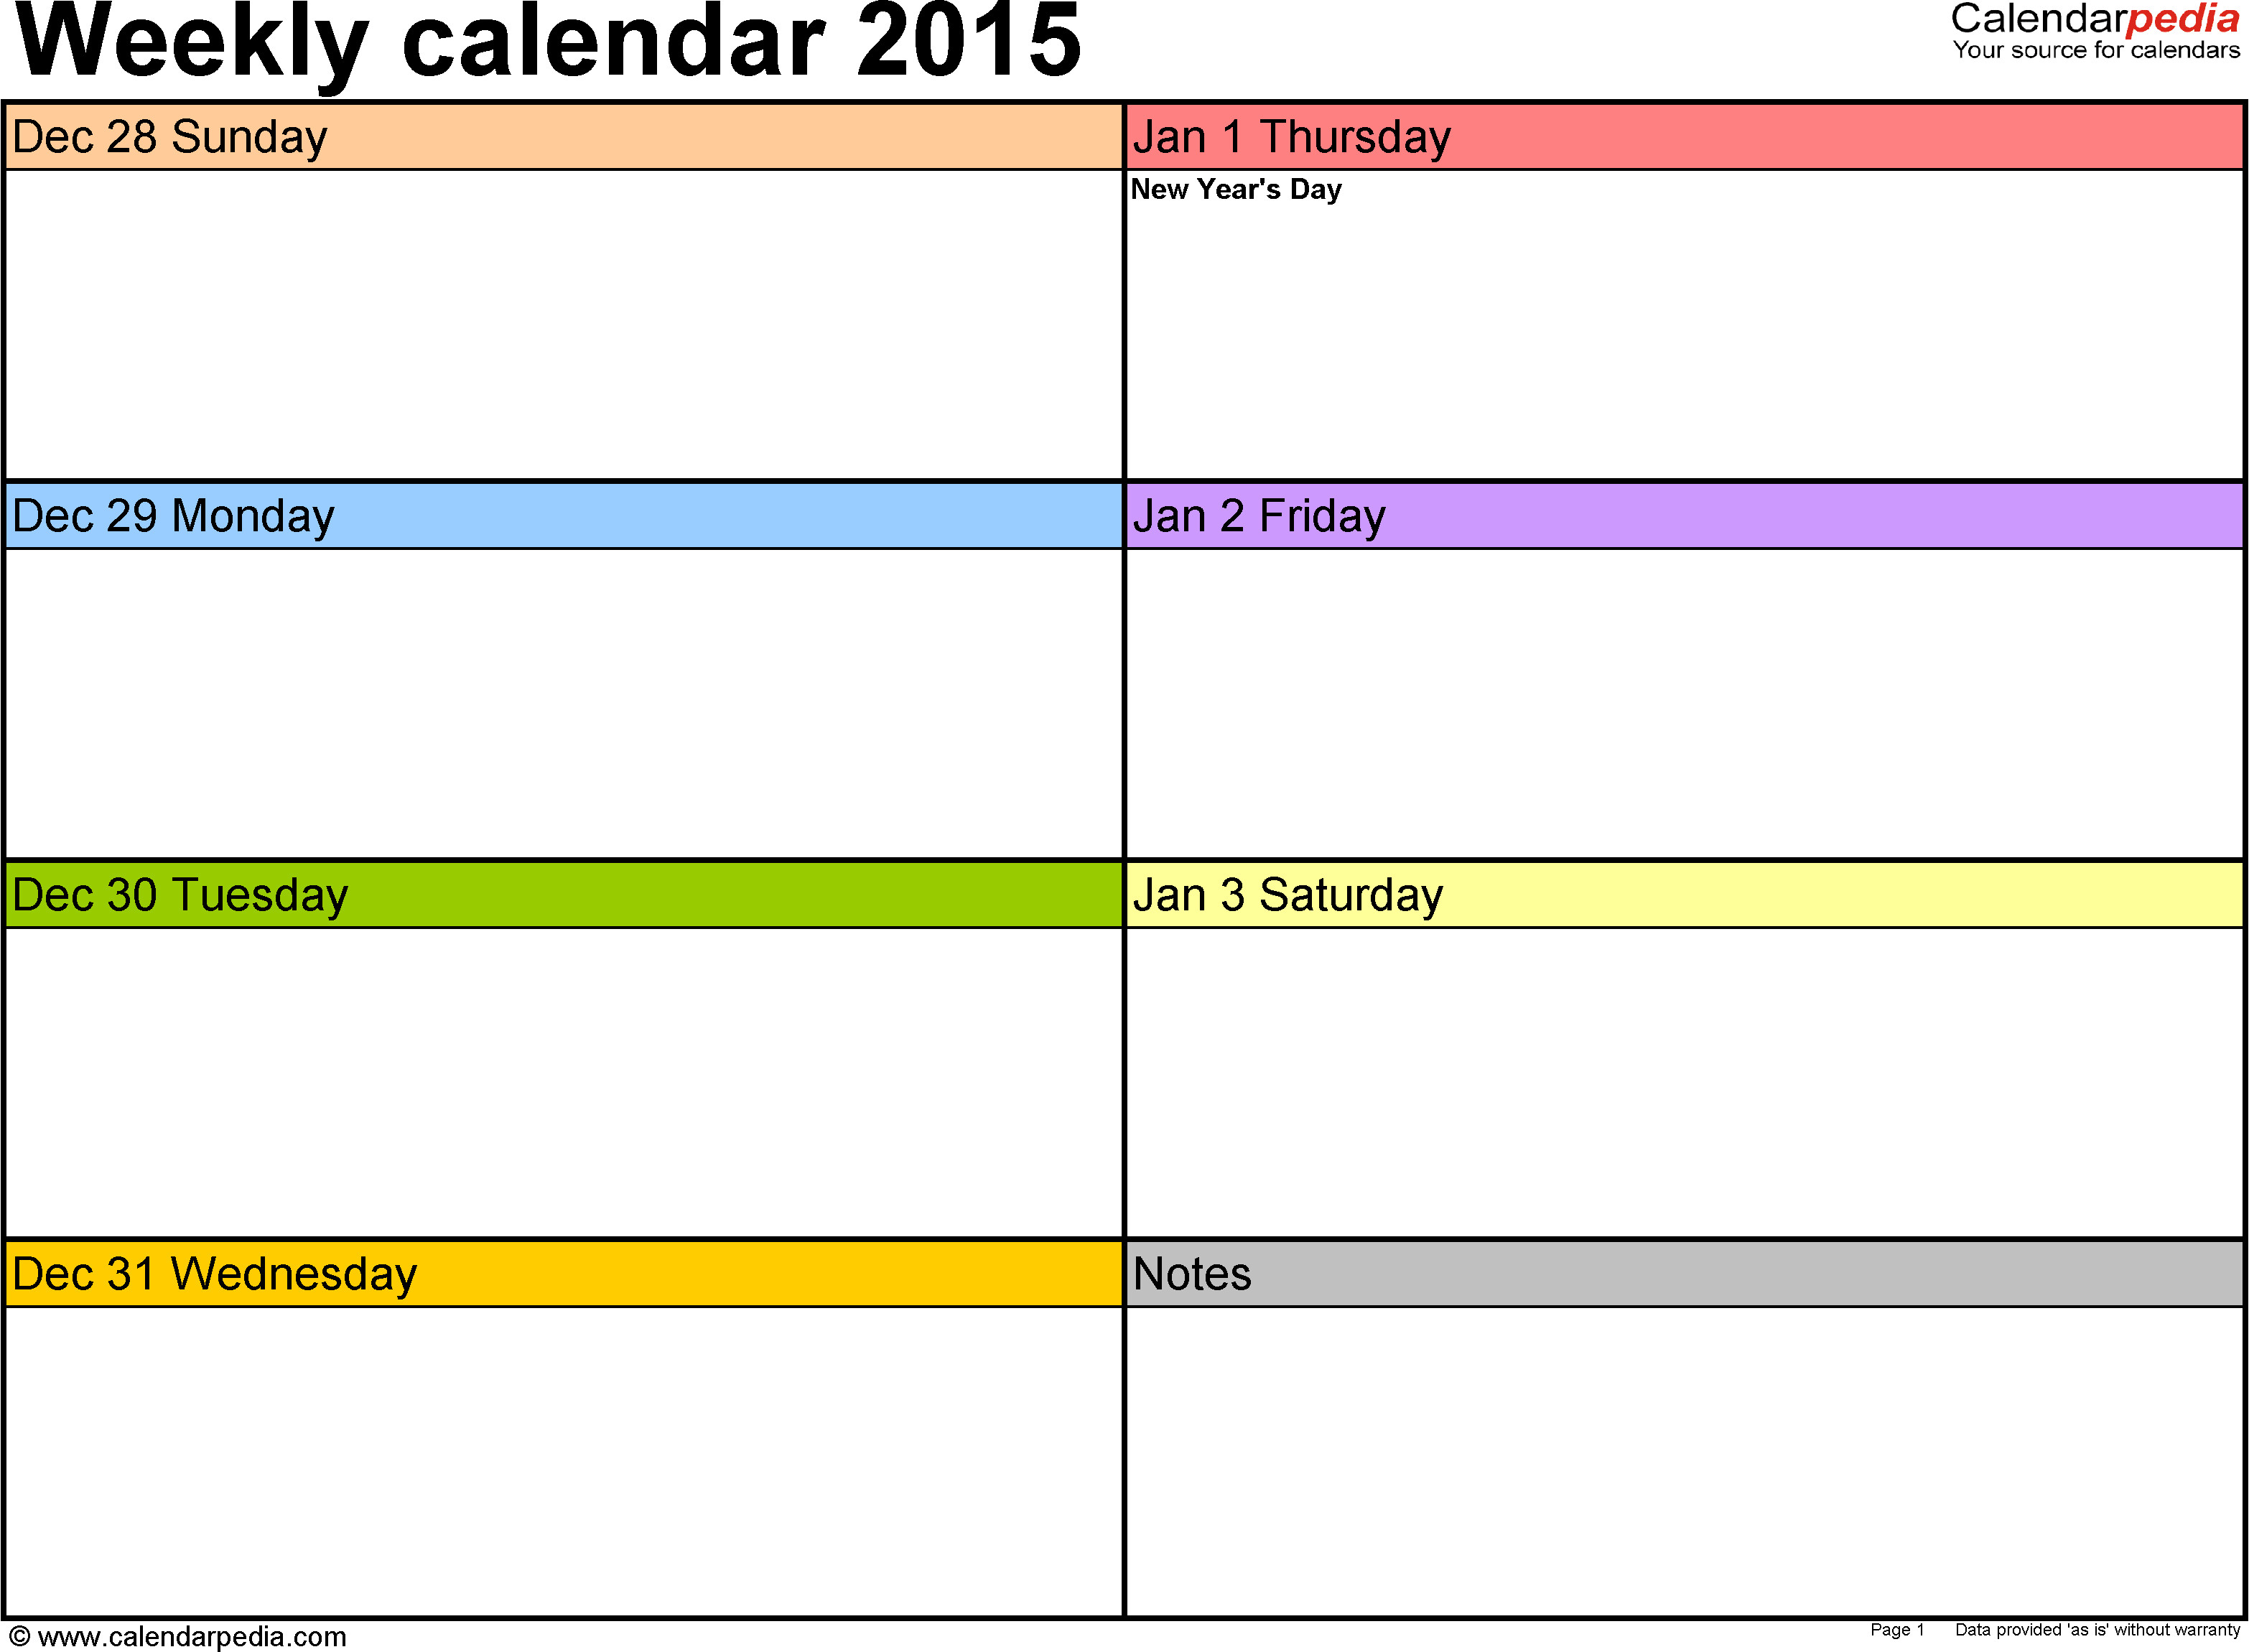 One Week Schedule Template Weekly Calendar 2015 for Excel 12 Free Printable Templates